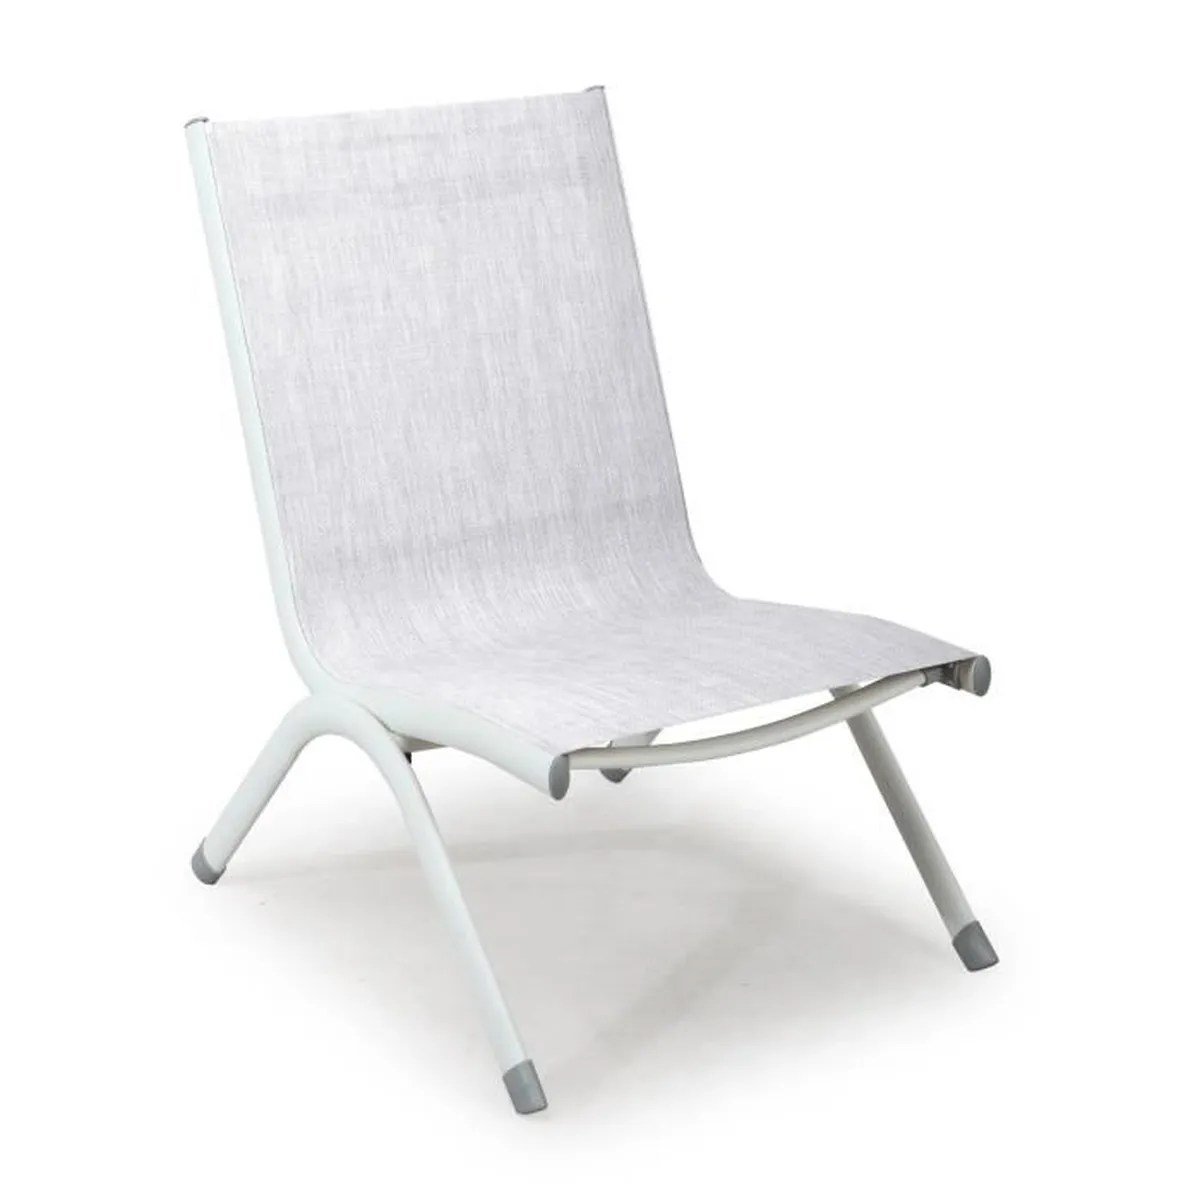 Chaise Basse Chaise Basse Jardin